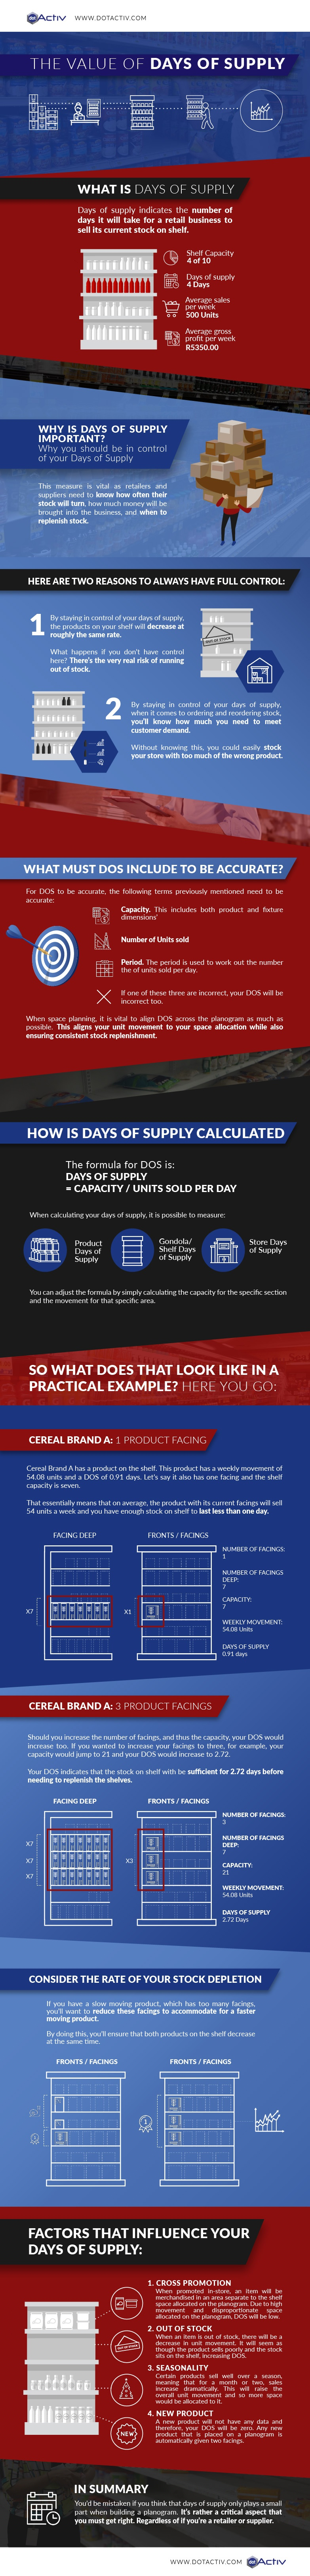 Days of Supply Infographic - DotActiv